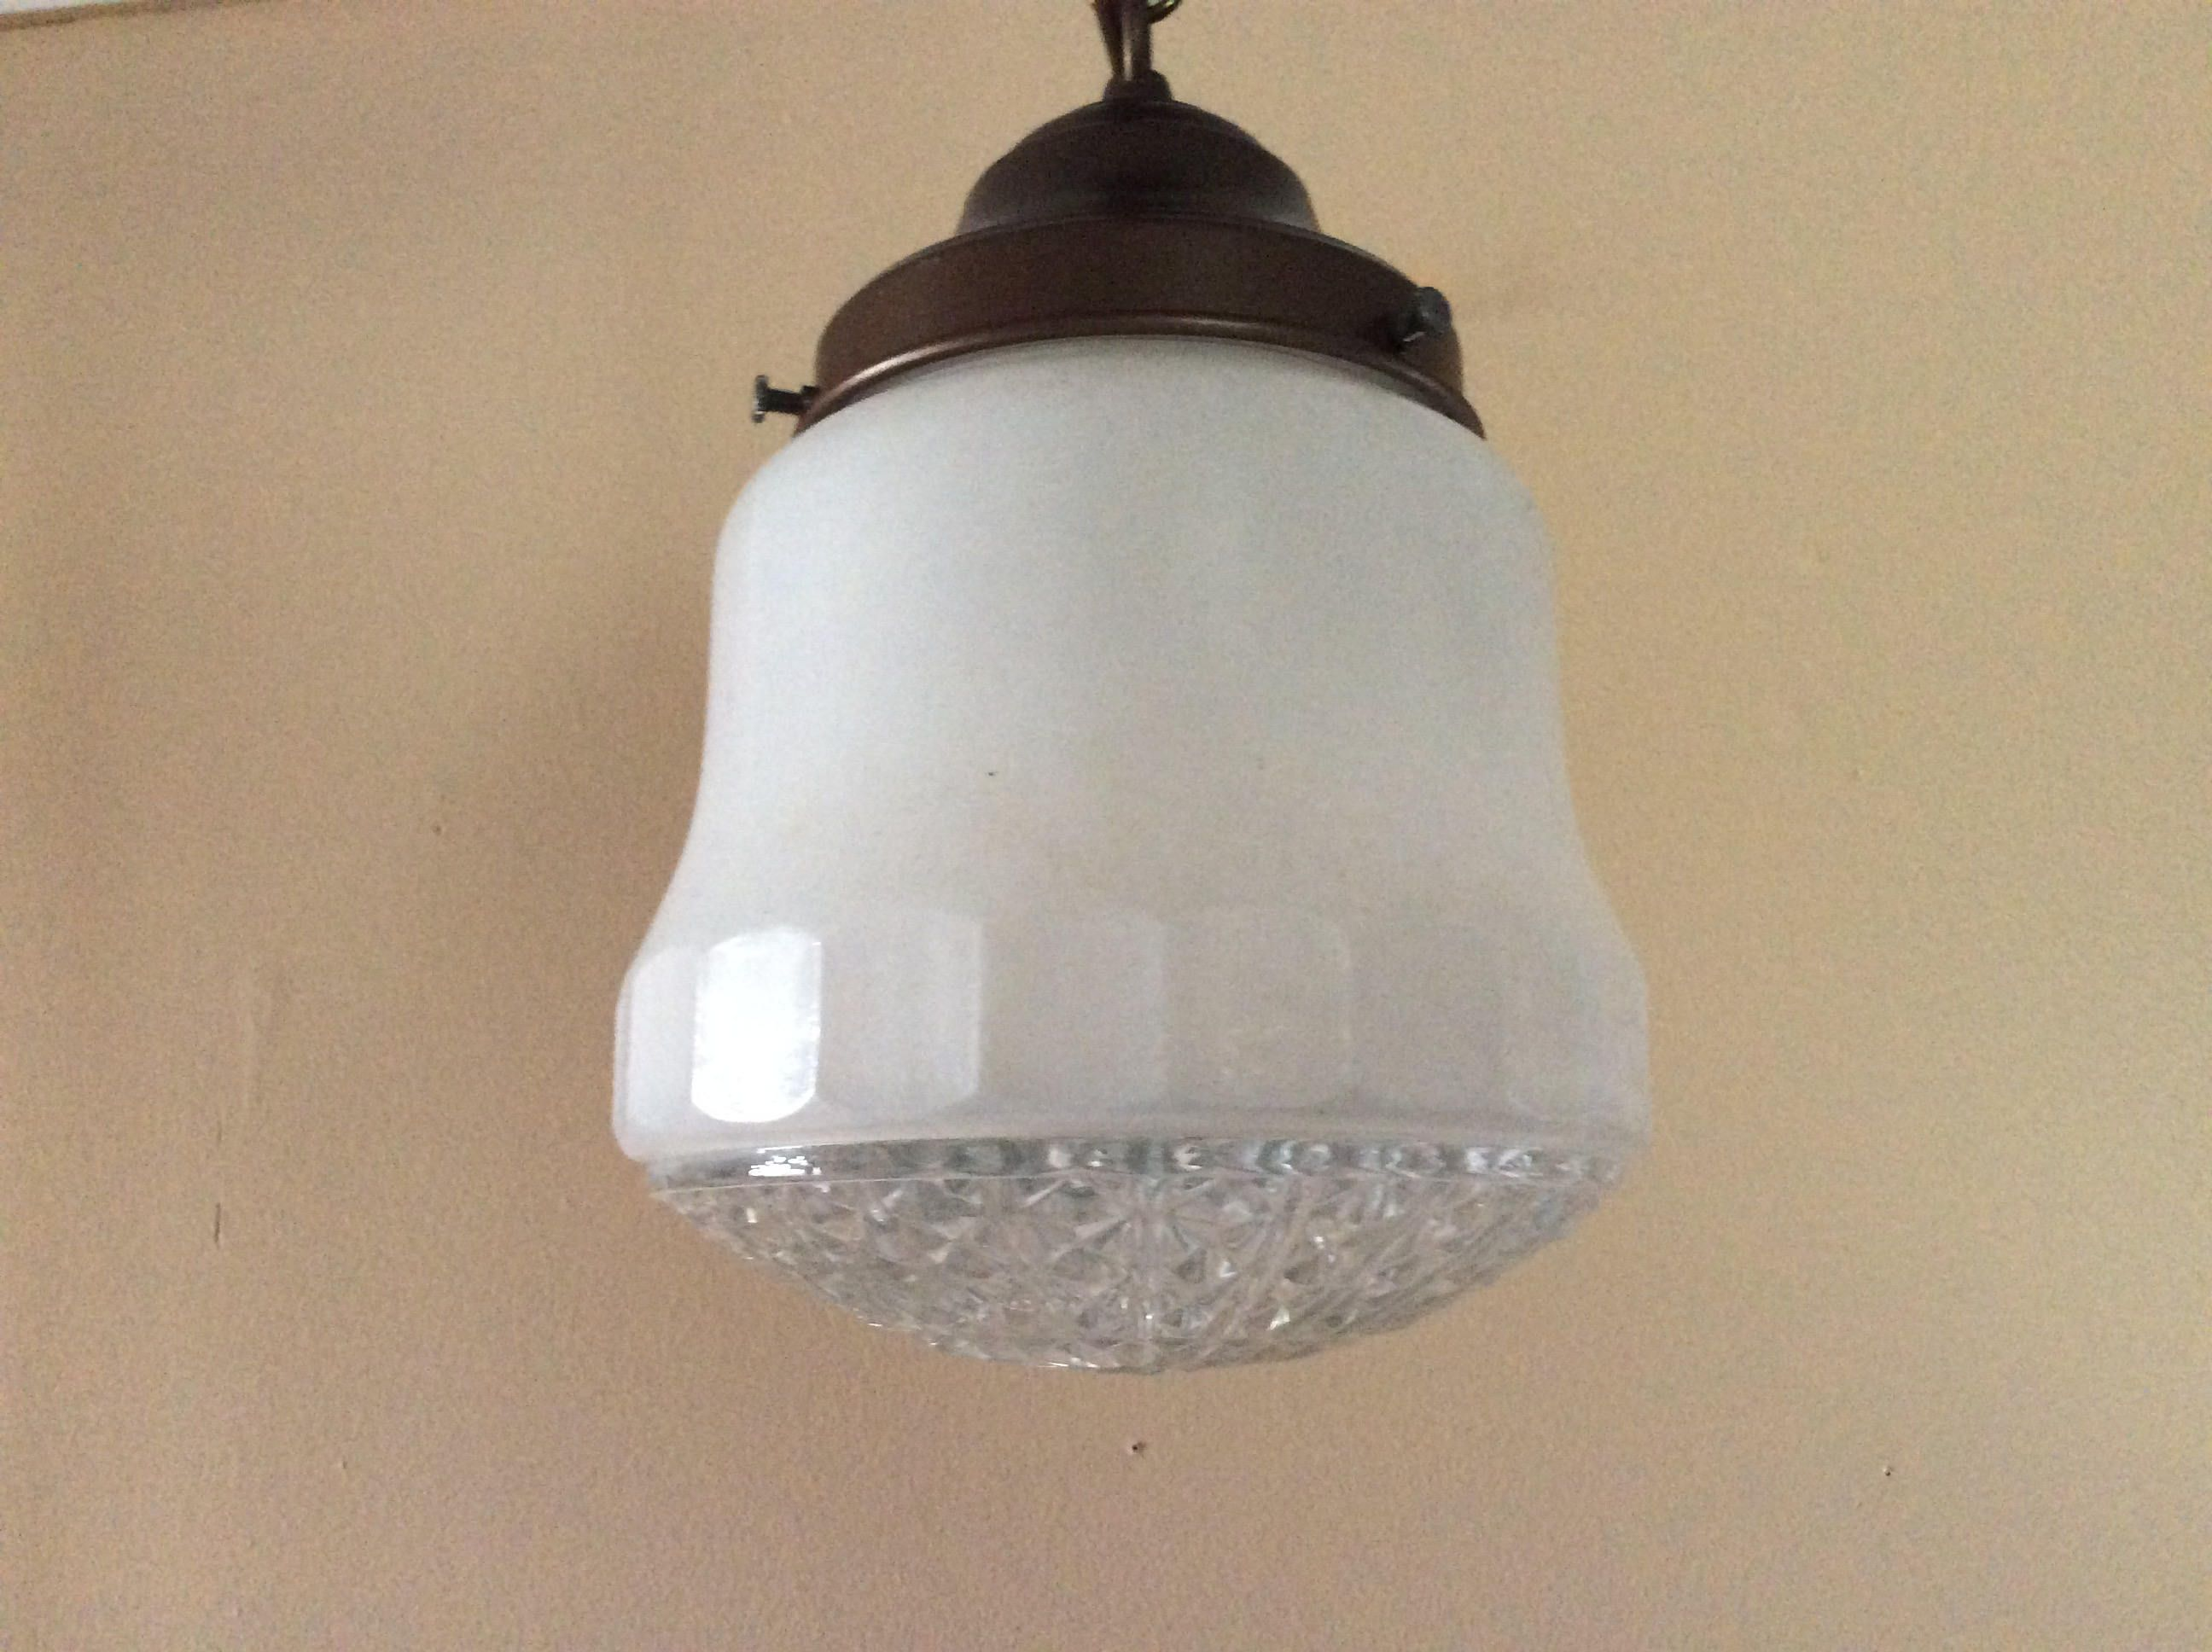 Art deco pendant light frosted crystal prismatic bottom star of art deco pendant light frosted crystal prismatic bottom star of david 1940s hallway vintage arubaitofo Gallery